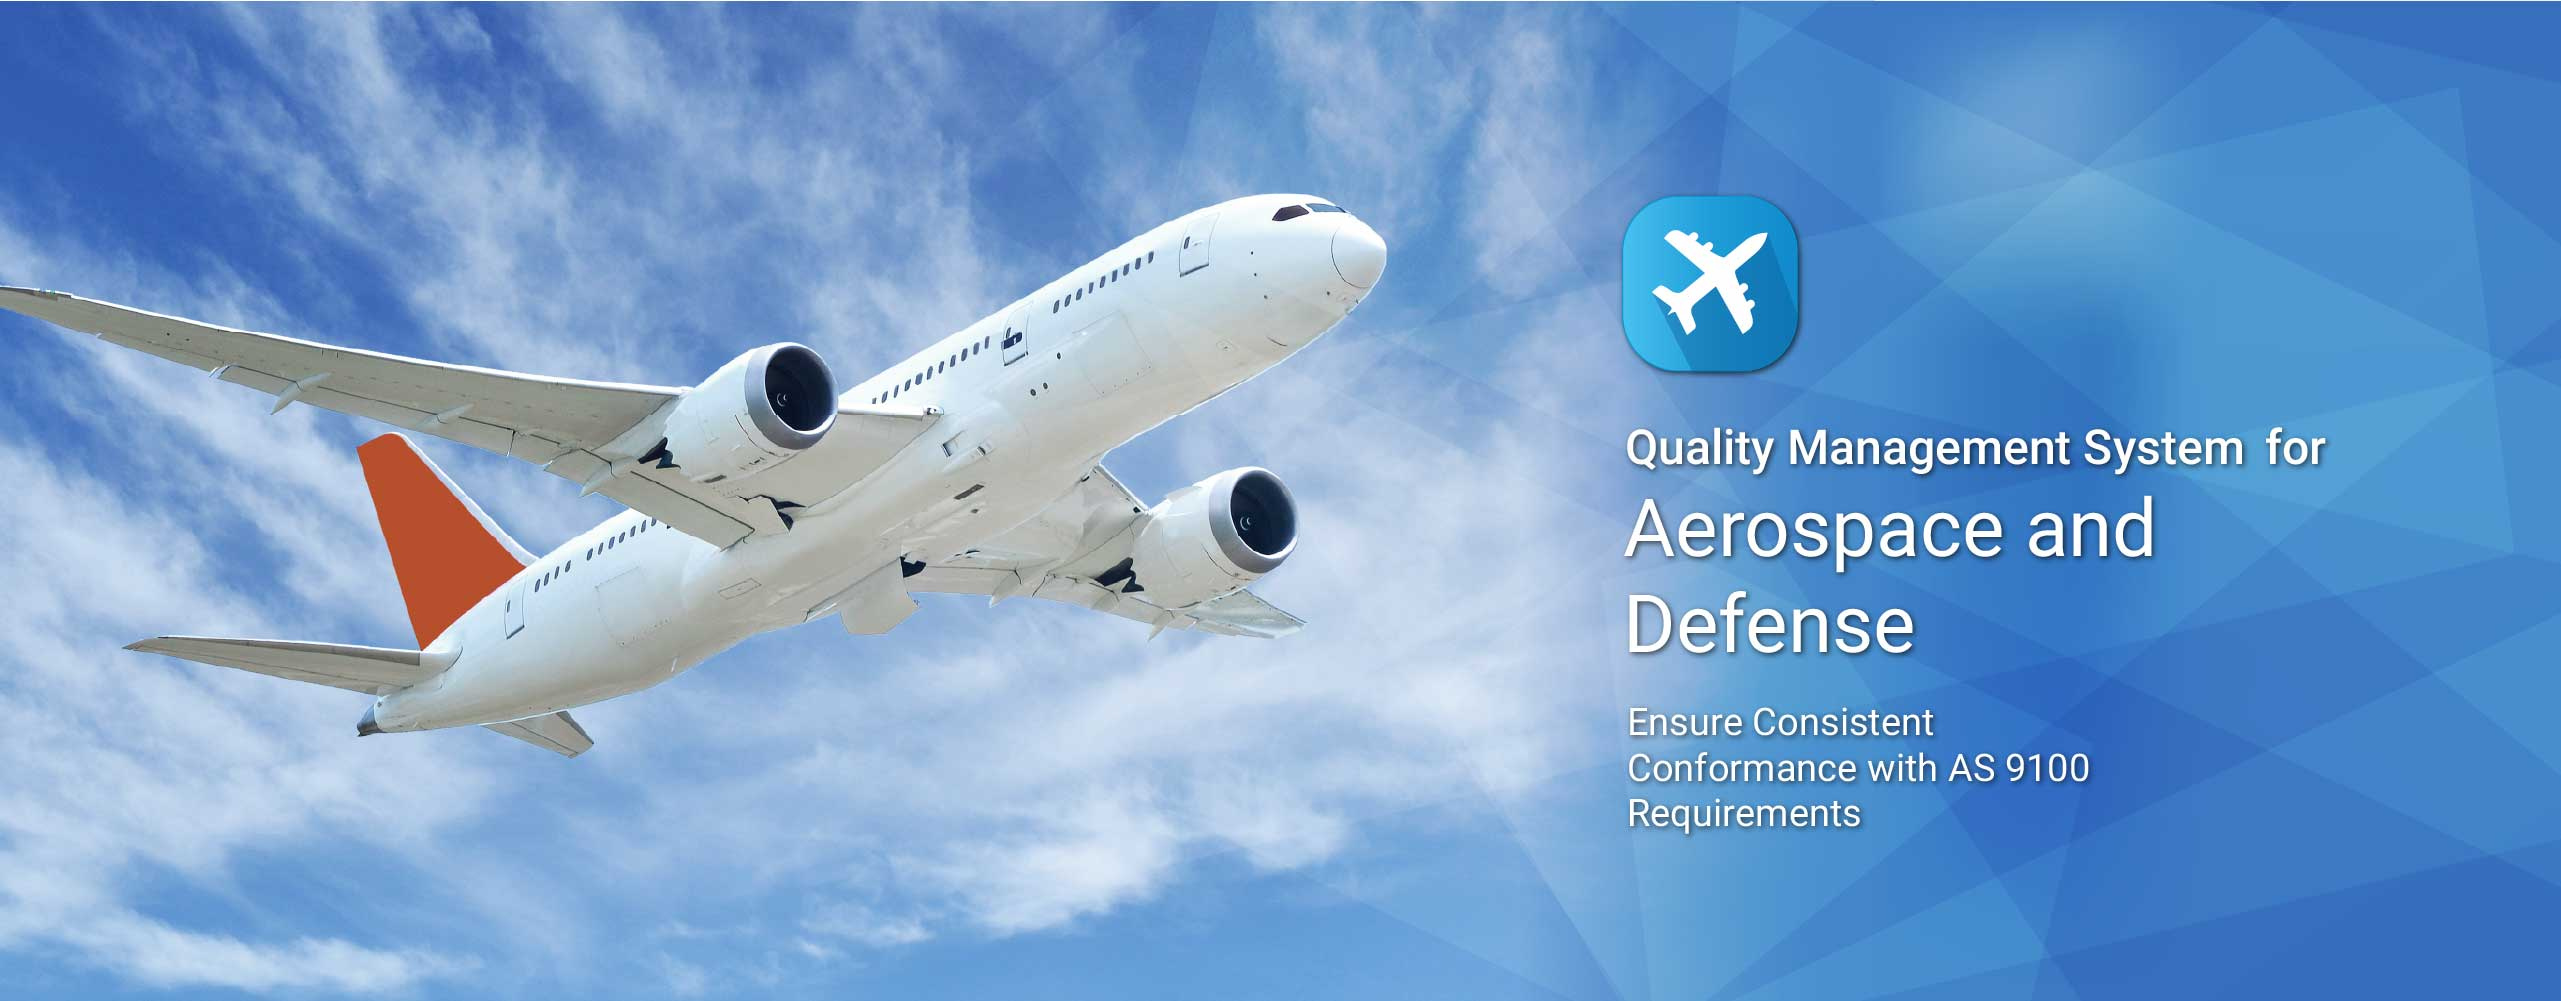 Quality Management System for Aerospace and Defense